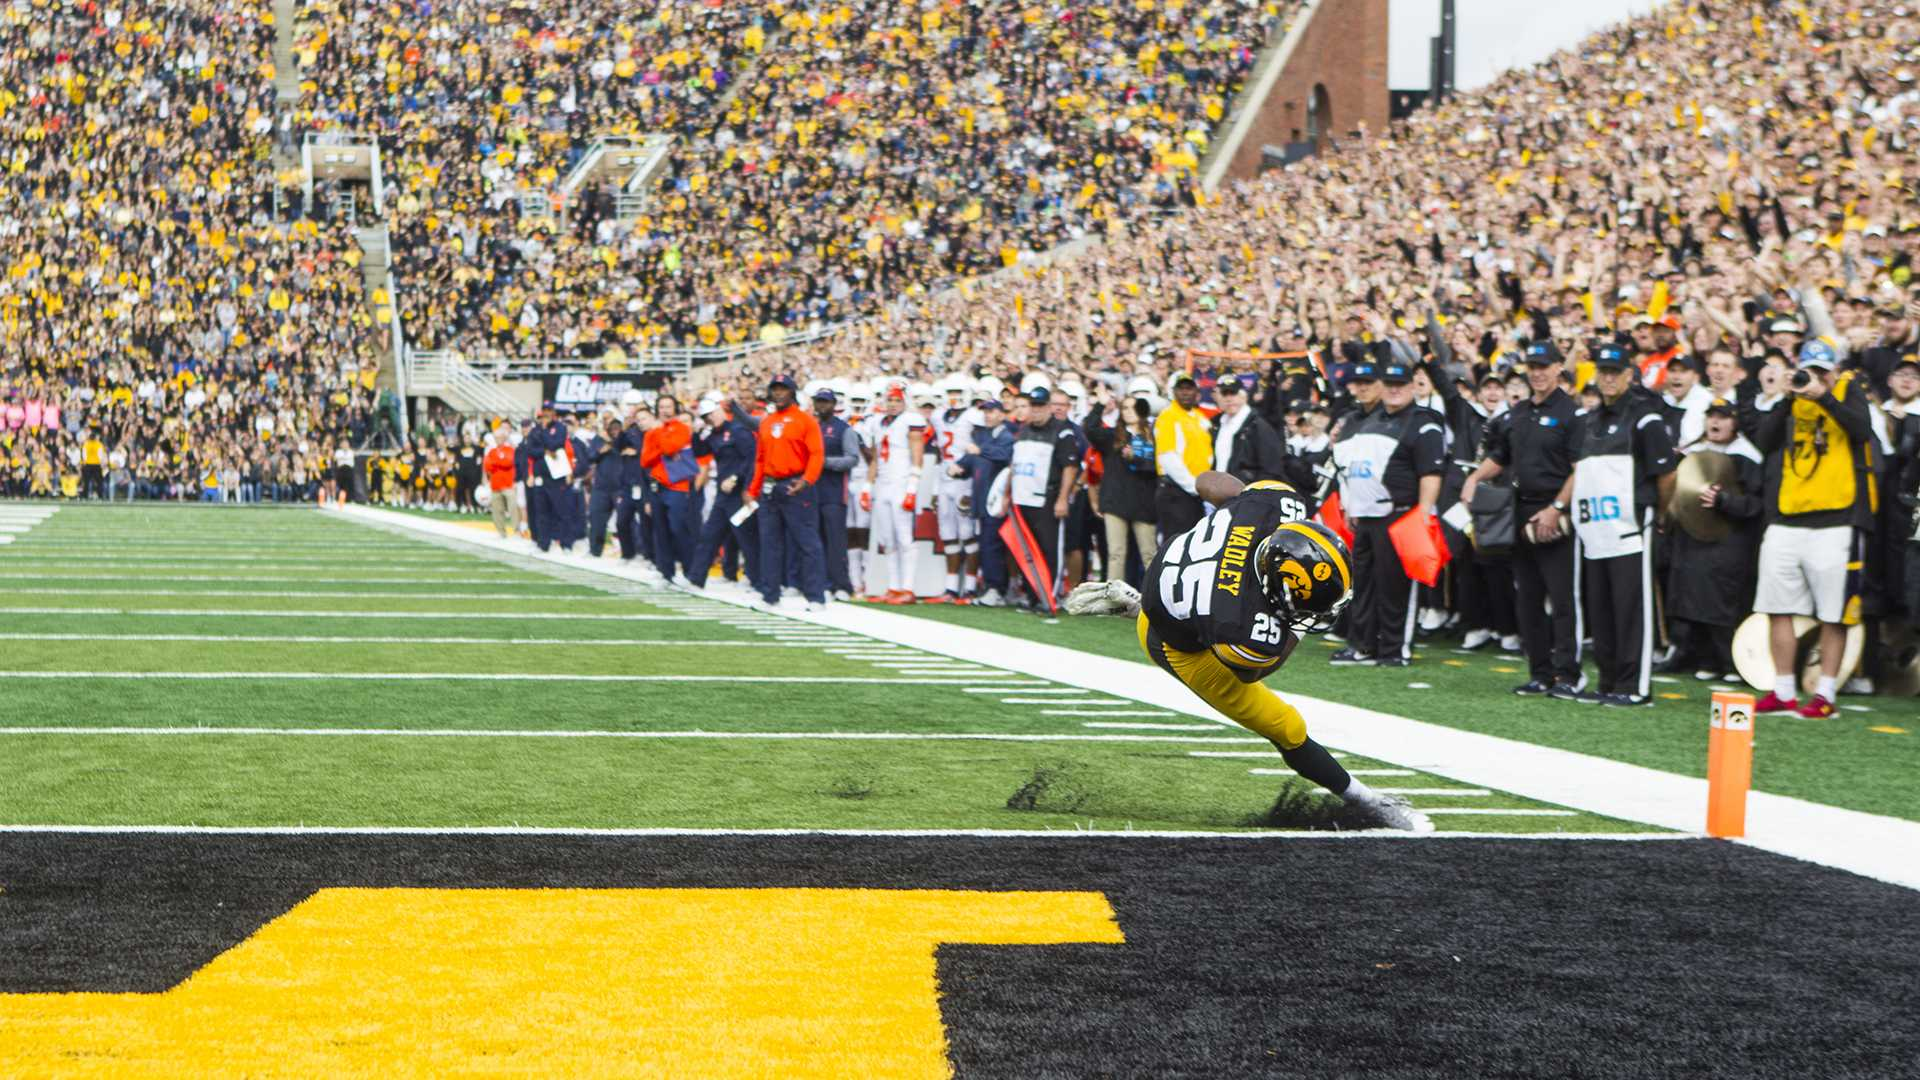 Iowa running back Akrum Wadley falls into the endzone during an NCAA football game between Iowa and Illinois in Kinnick Stadium on Saturday, Oct. 7, 2017.  The Hawkeyes defeated the Fighting Illini, 45-16. (Joseph Cress/The Daily Iowan)